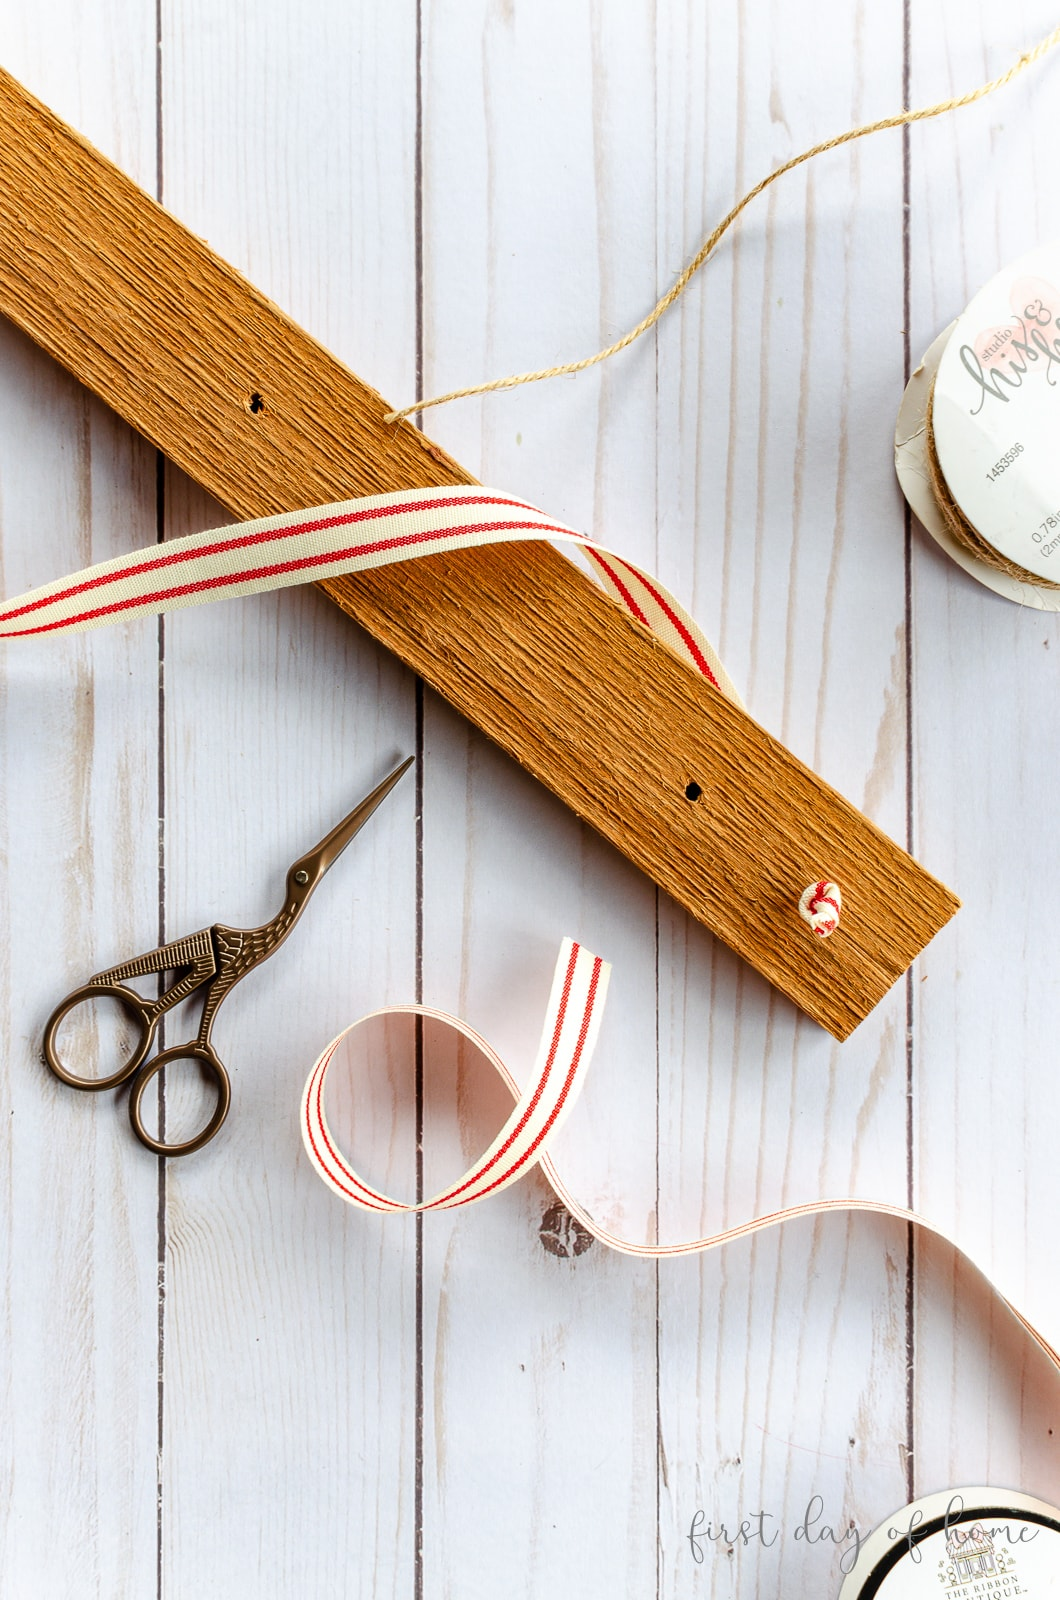 Attaching ribbon and jute cord to wood for DIY Christmas card holder